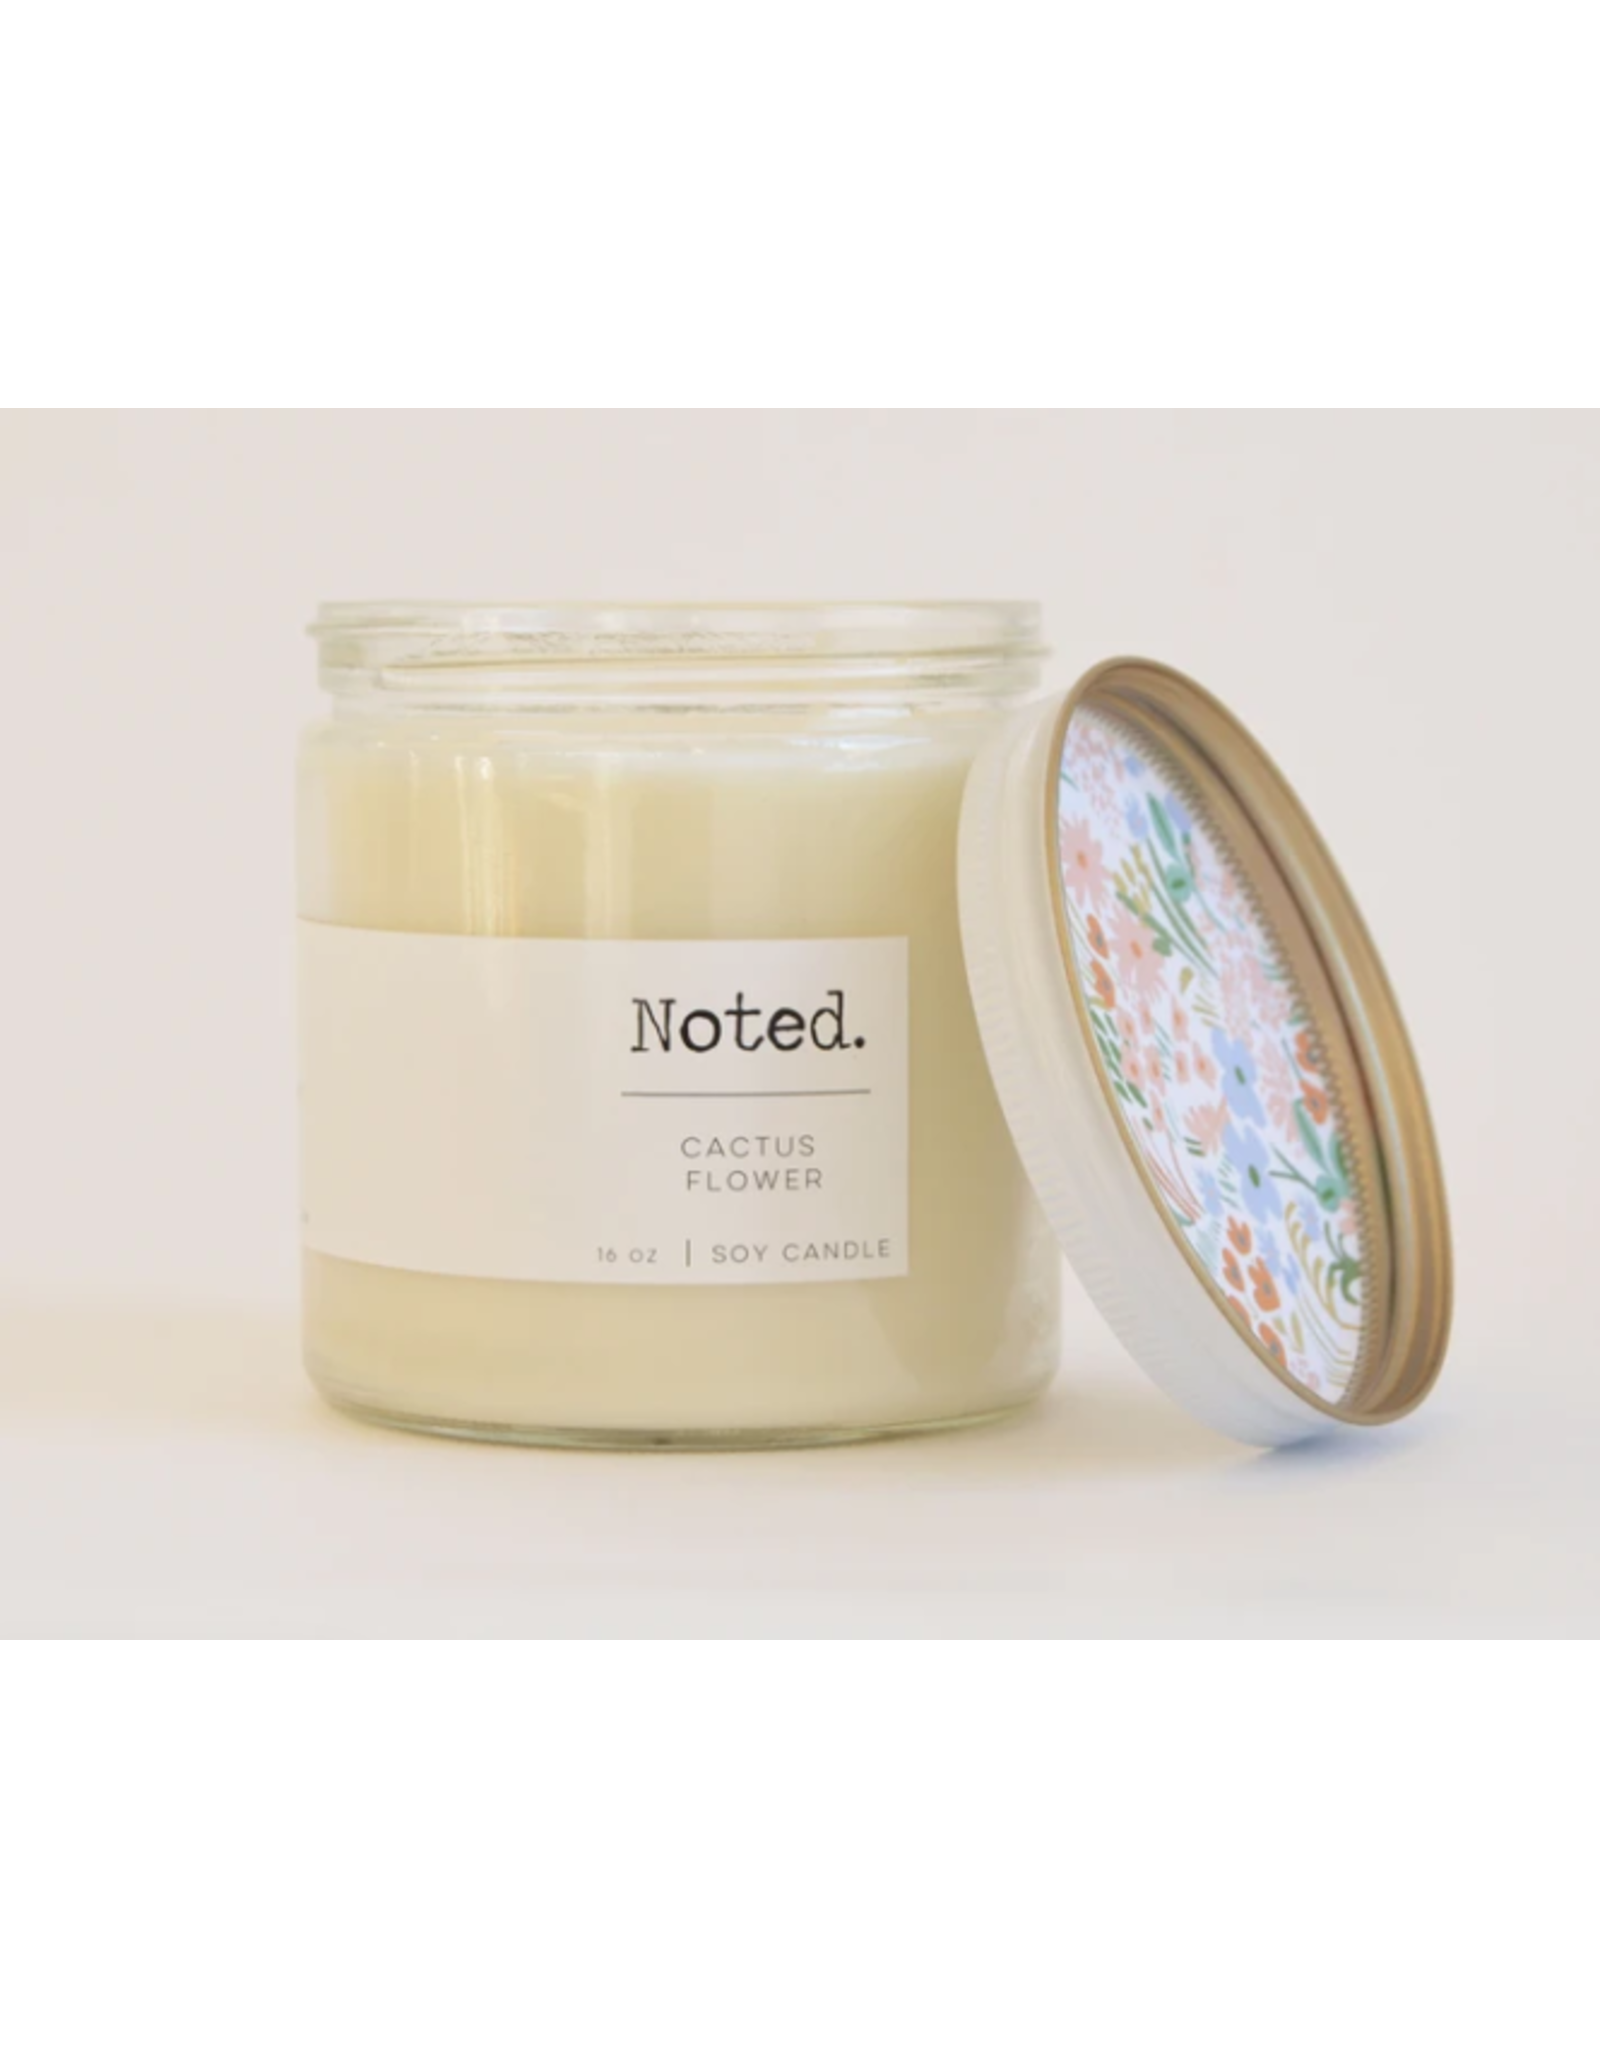 Noted Cactus Flower Candle